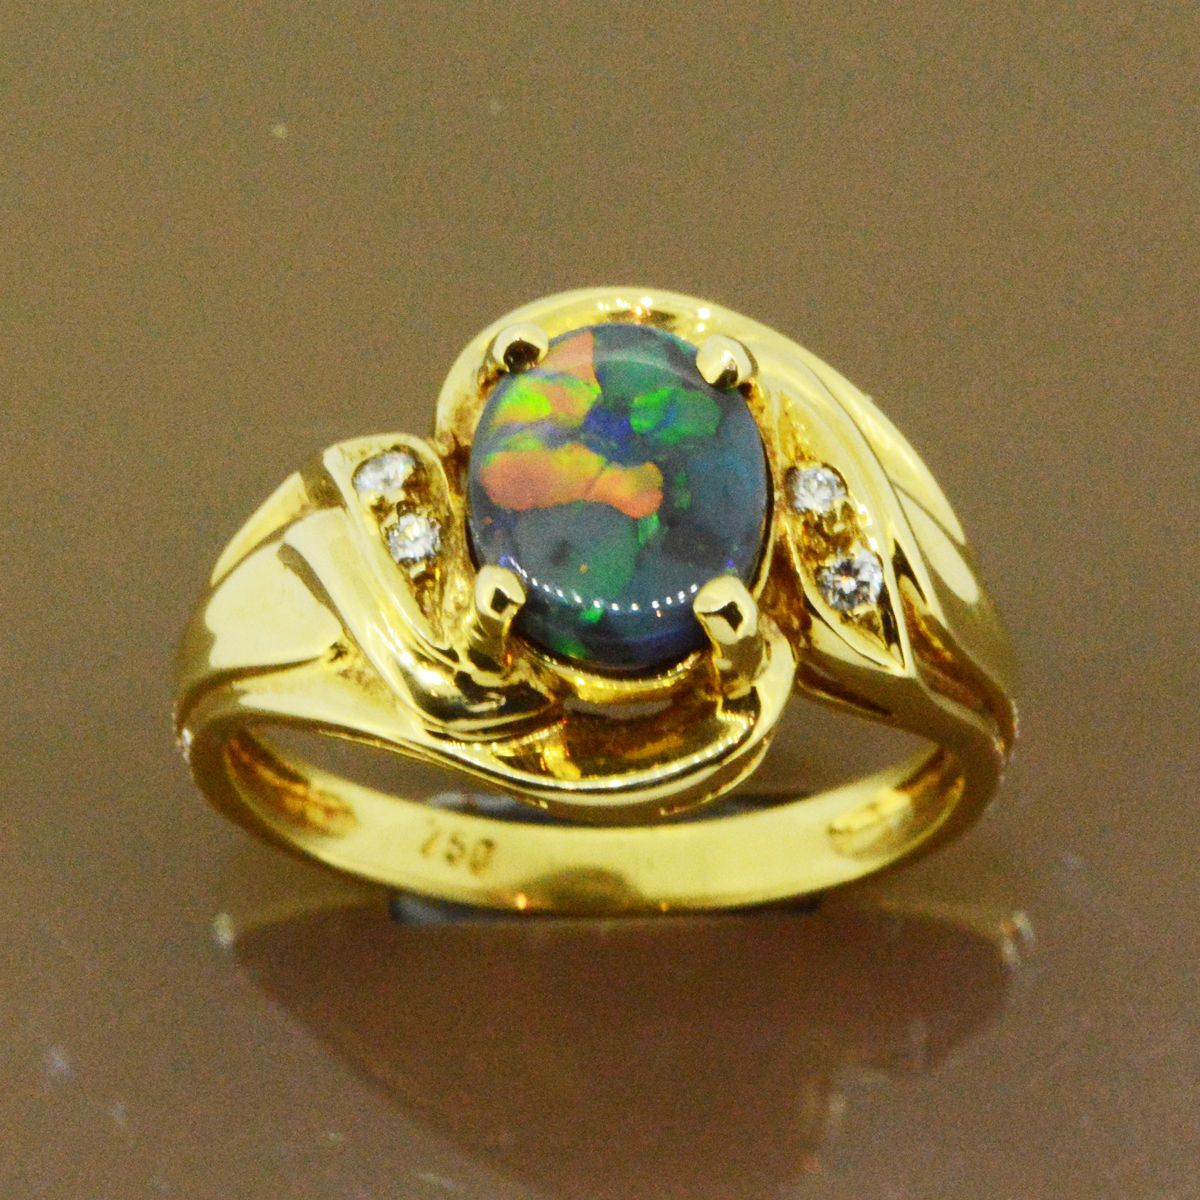 Black opal ring set in 18ct yellow gold (8mmx7mm)